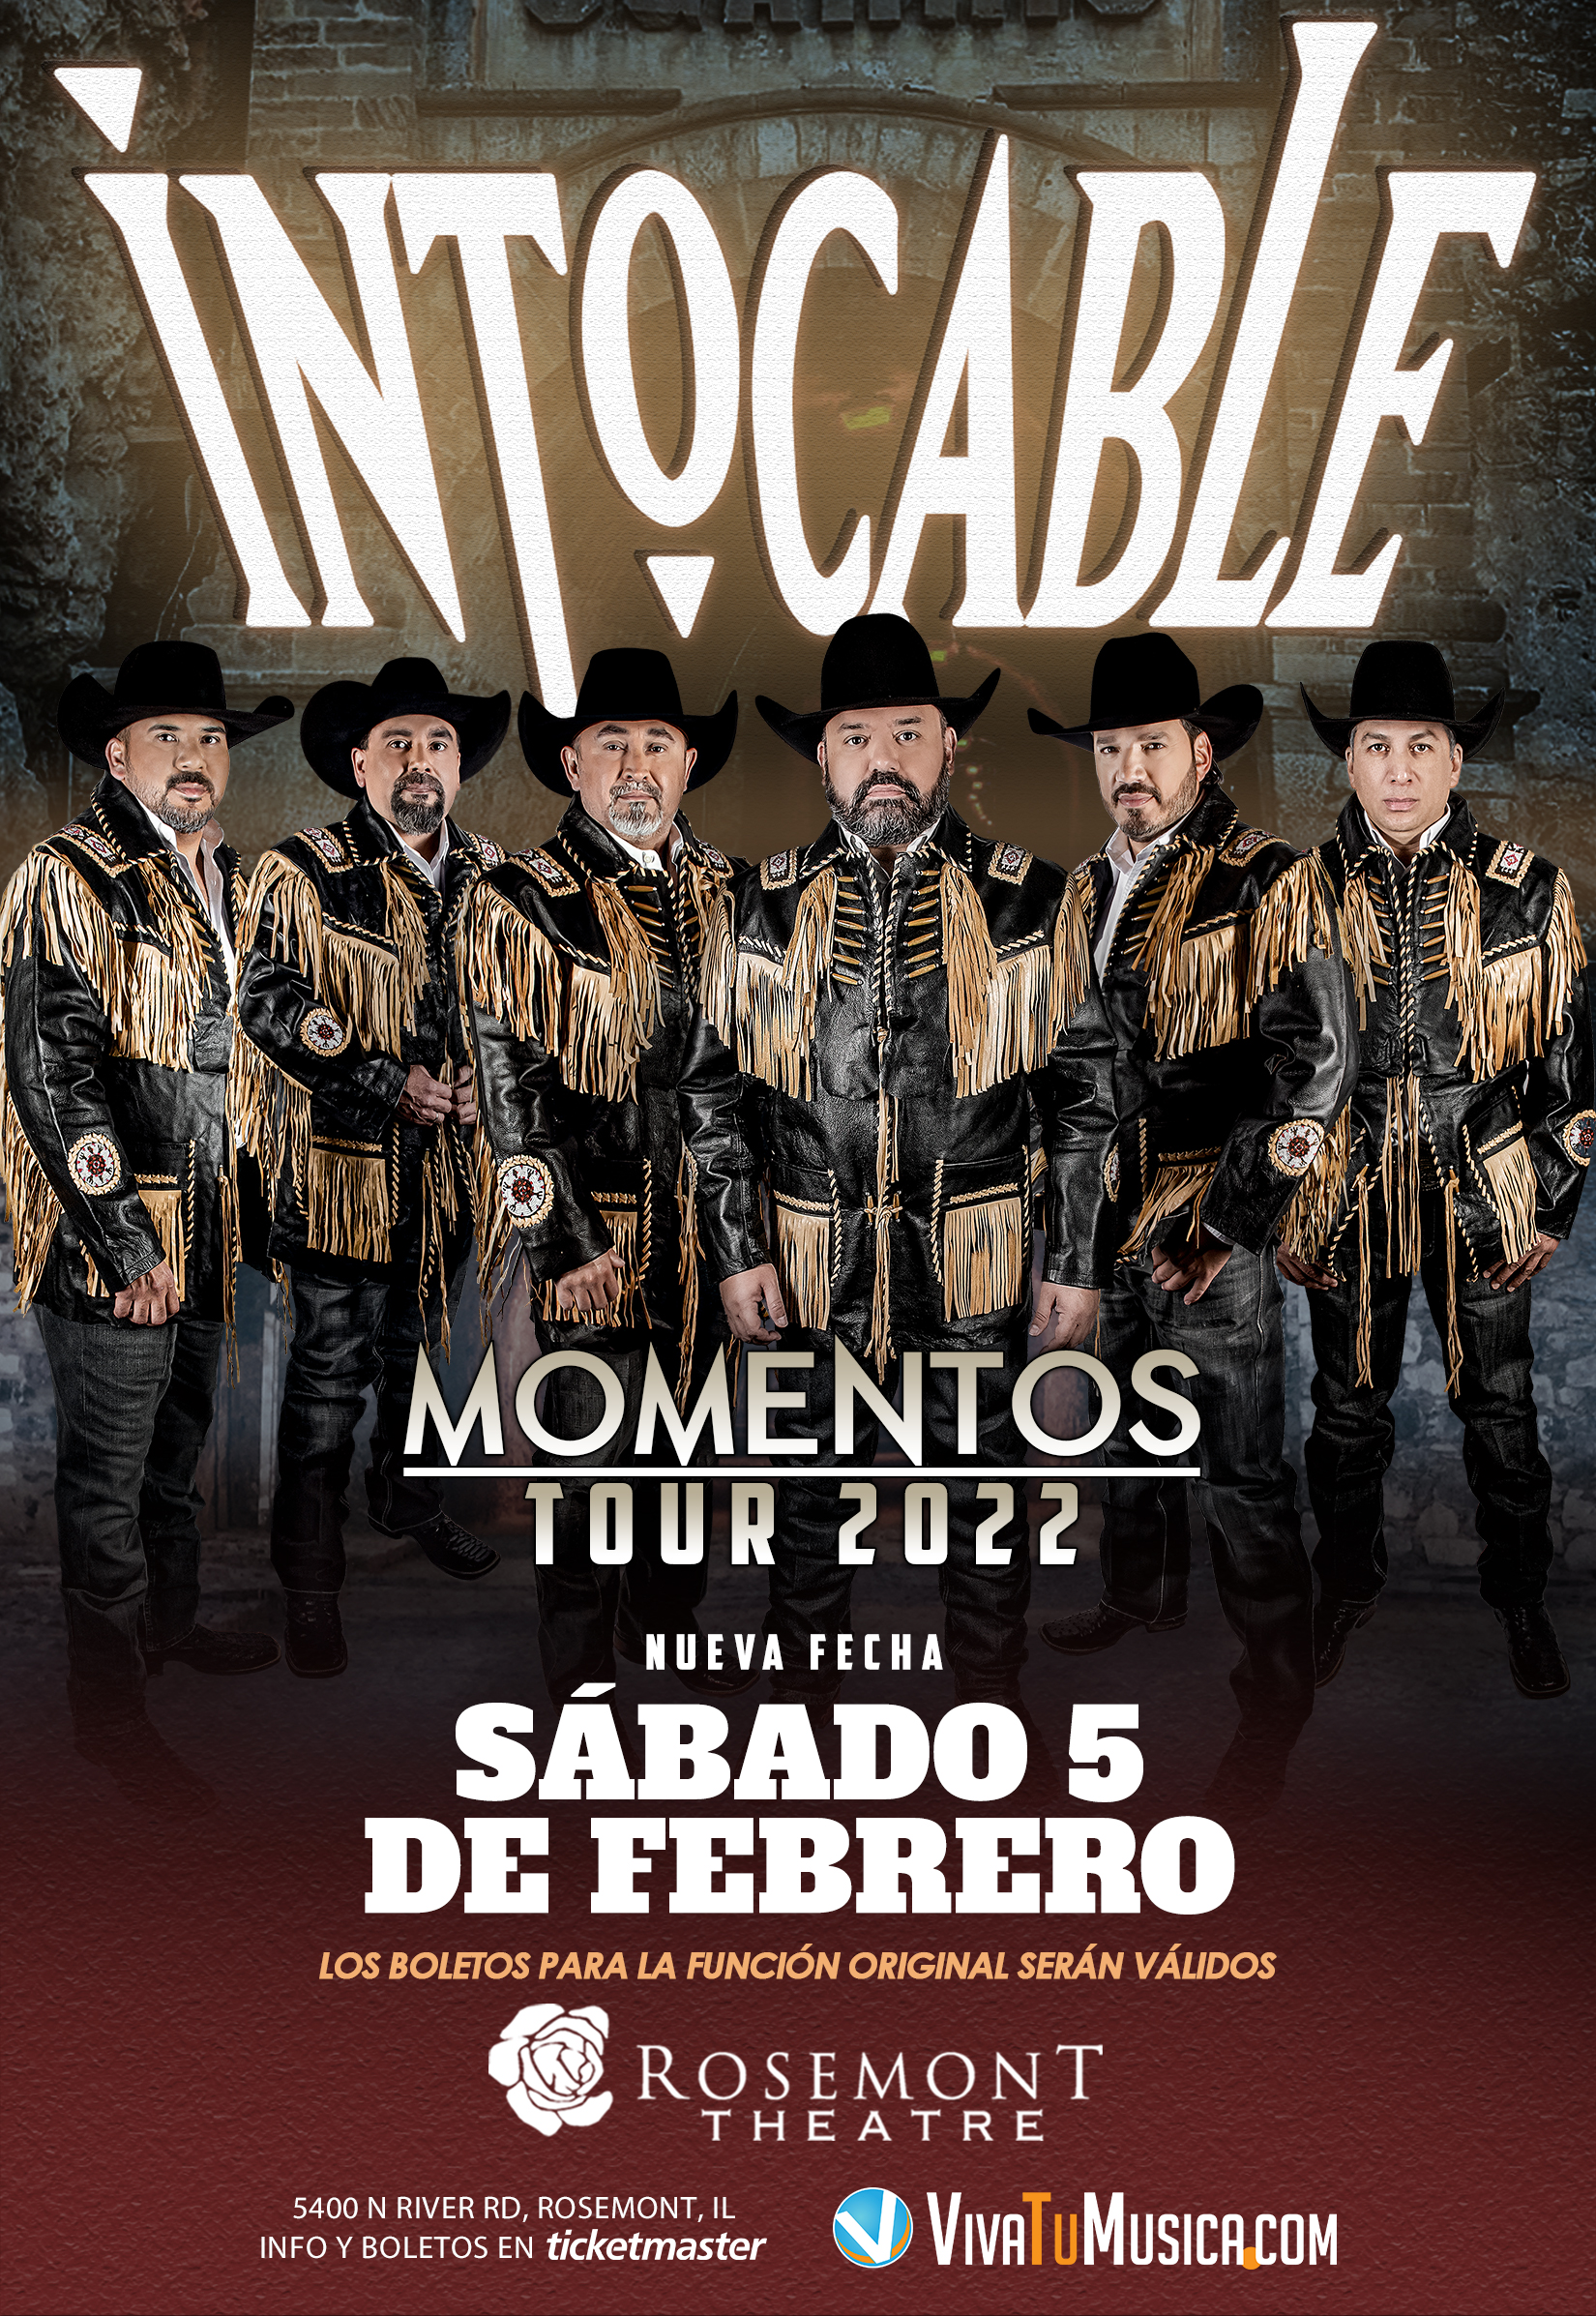 Intocable - Rosemont Theatre @ Rosemont, IL | Rosemont | Illinois | United States